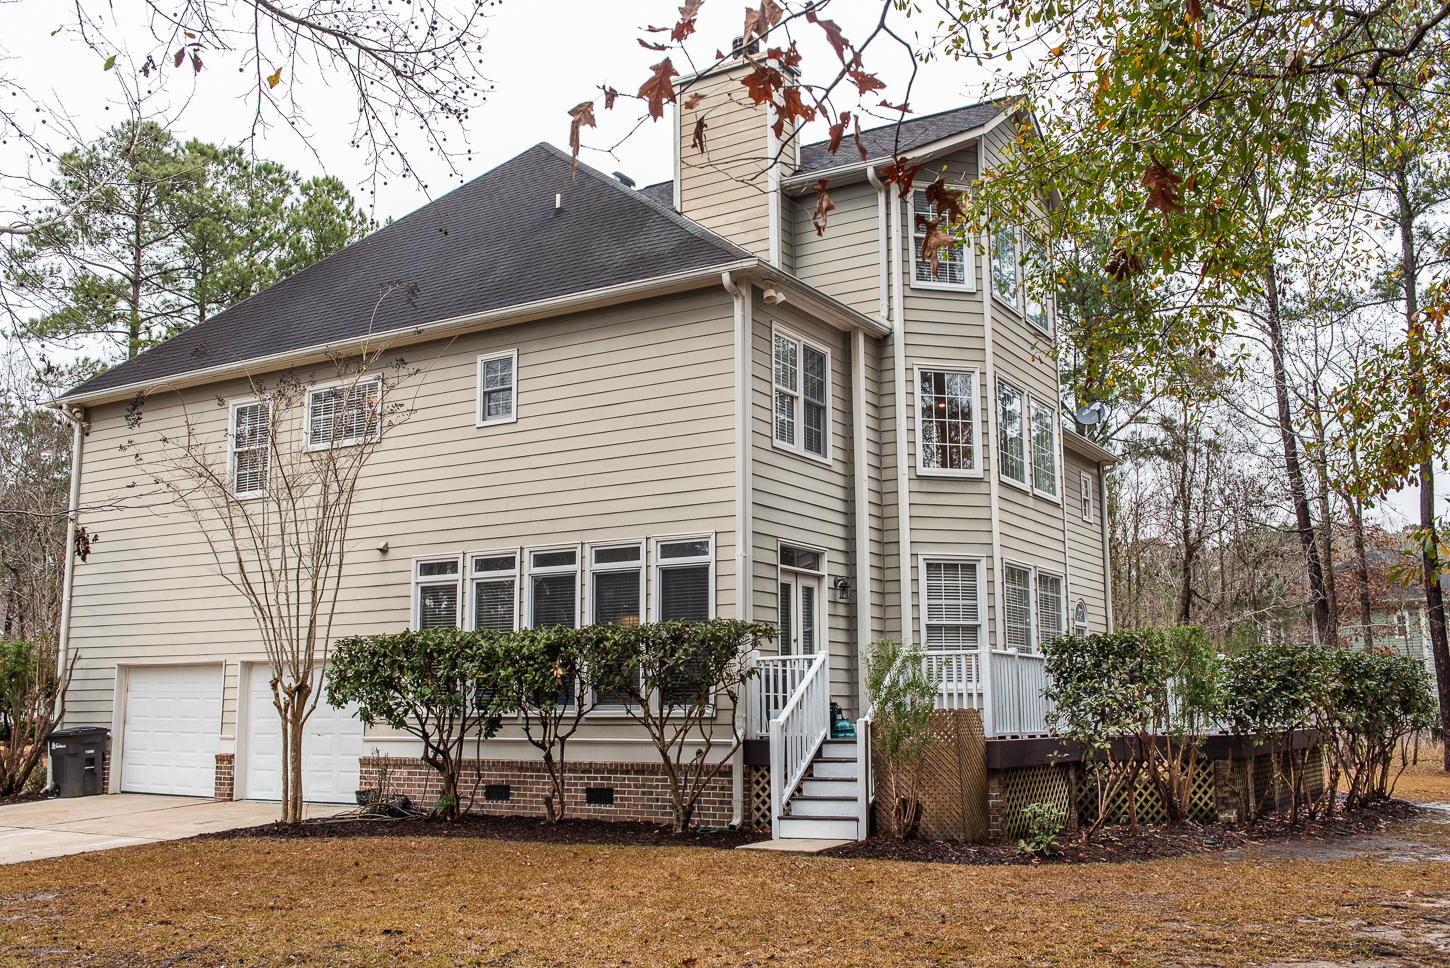 Dunes West Homes For Sale - 1794 Shell Ring, Mount Pleasant, SC - 17